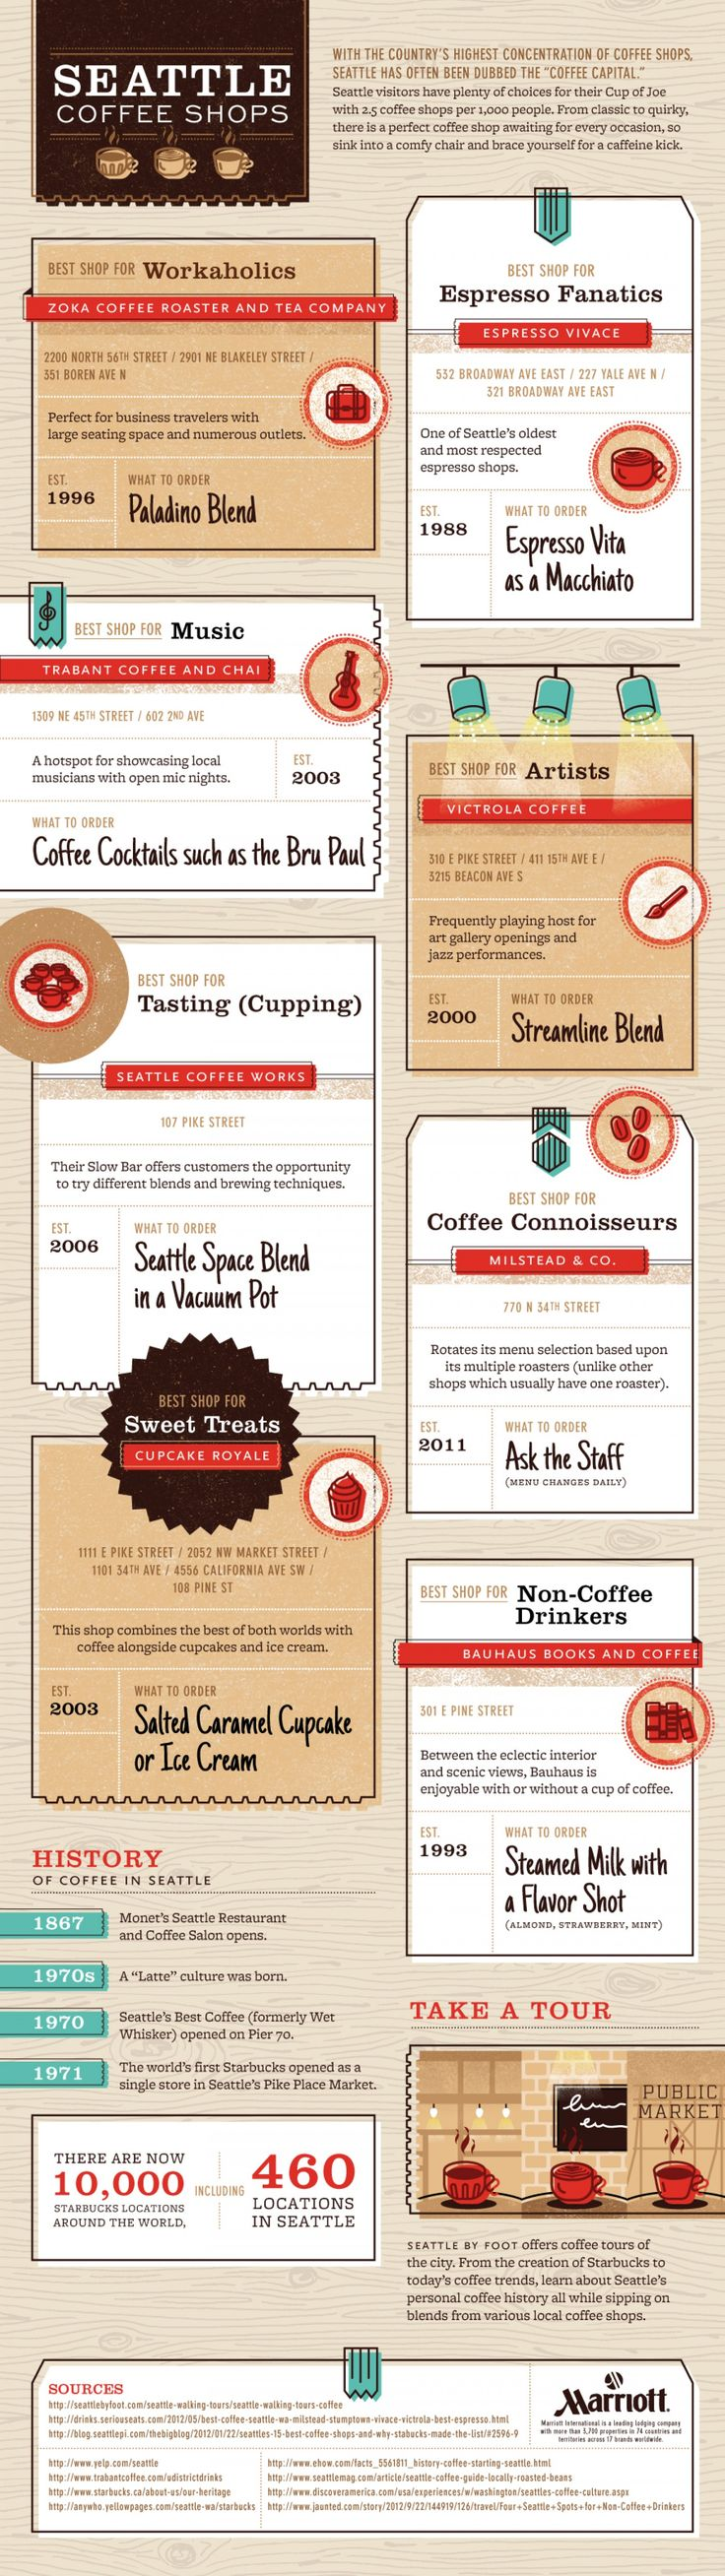 Been to all of them! favorites are still Vivace and Moore <3 Seattle Coffee Shops Infographic